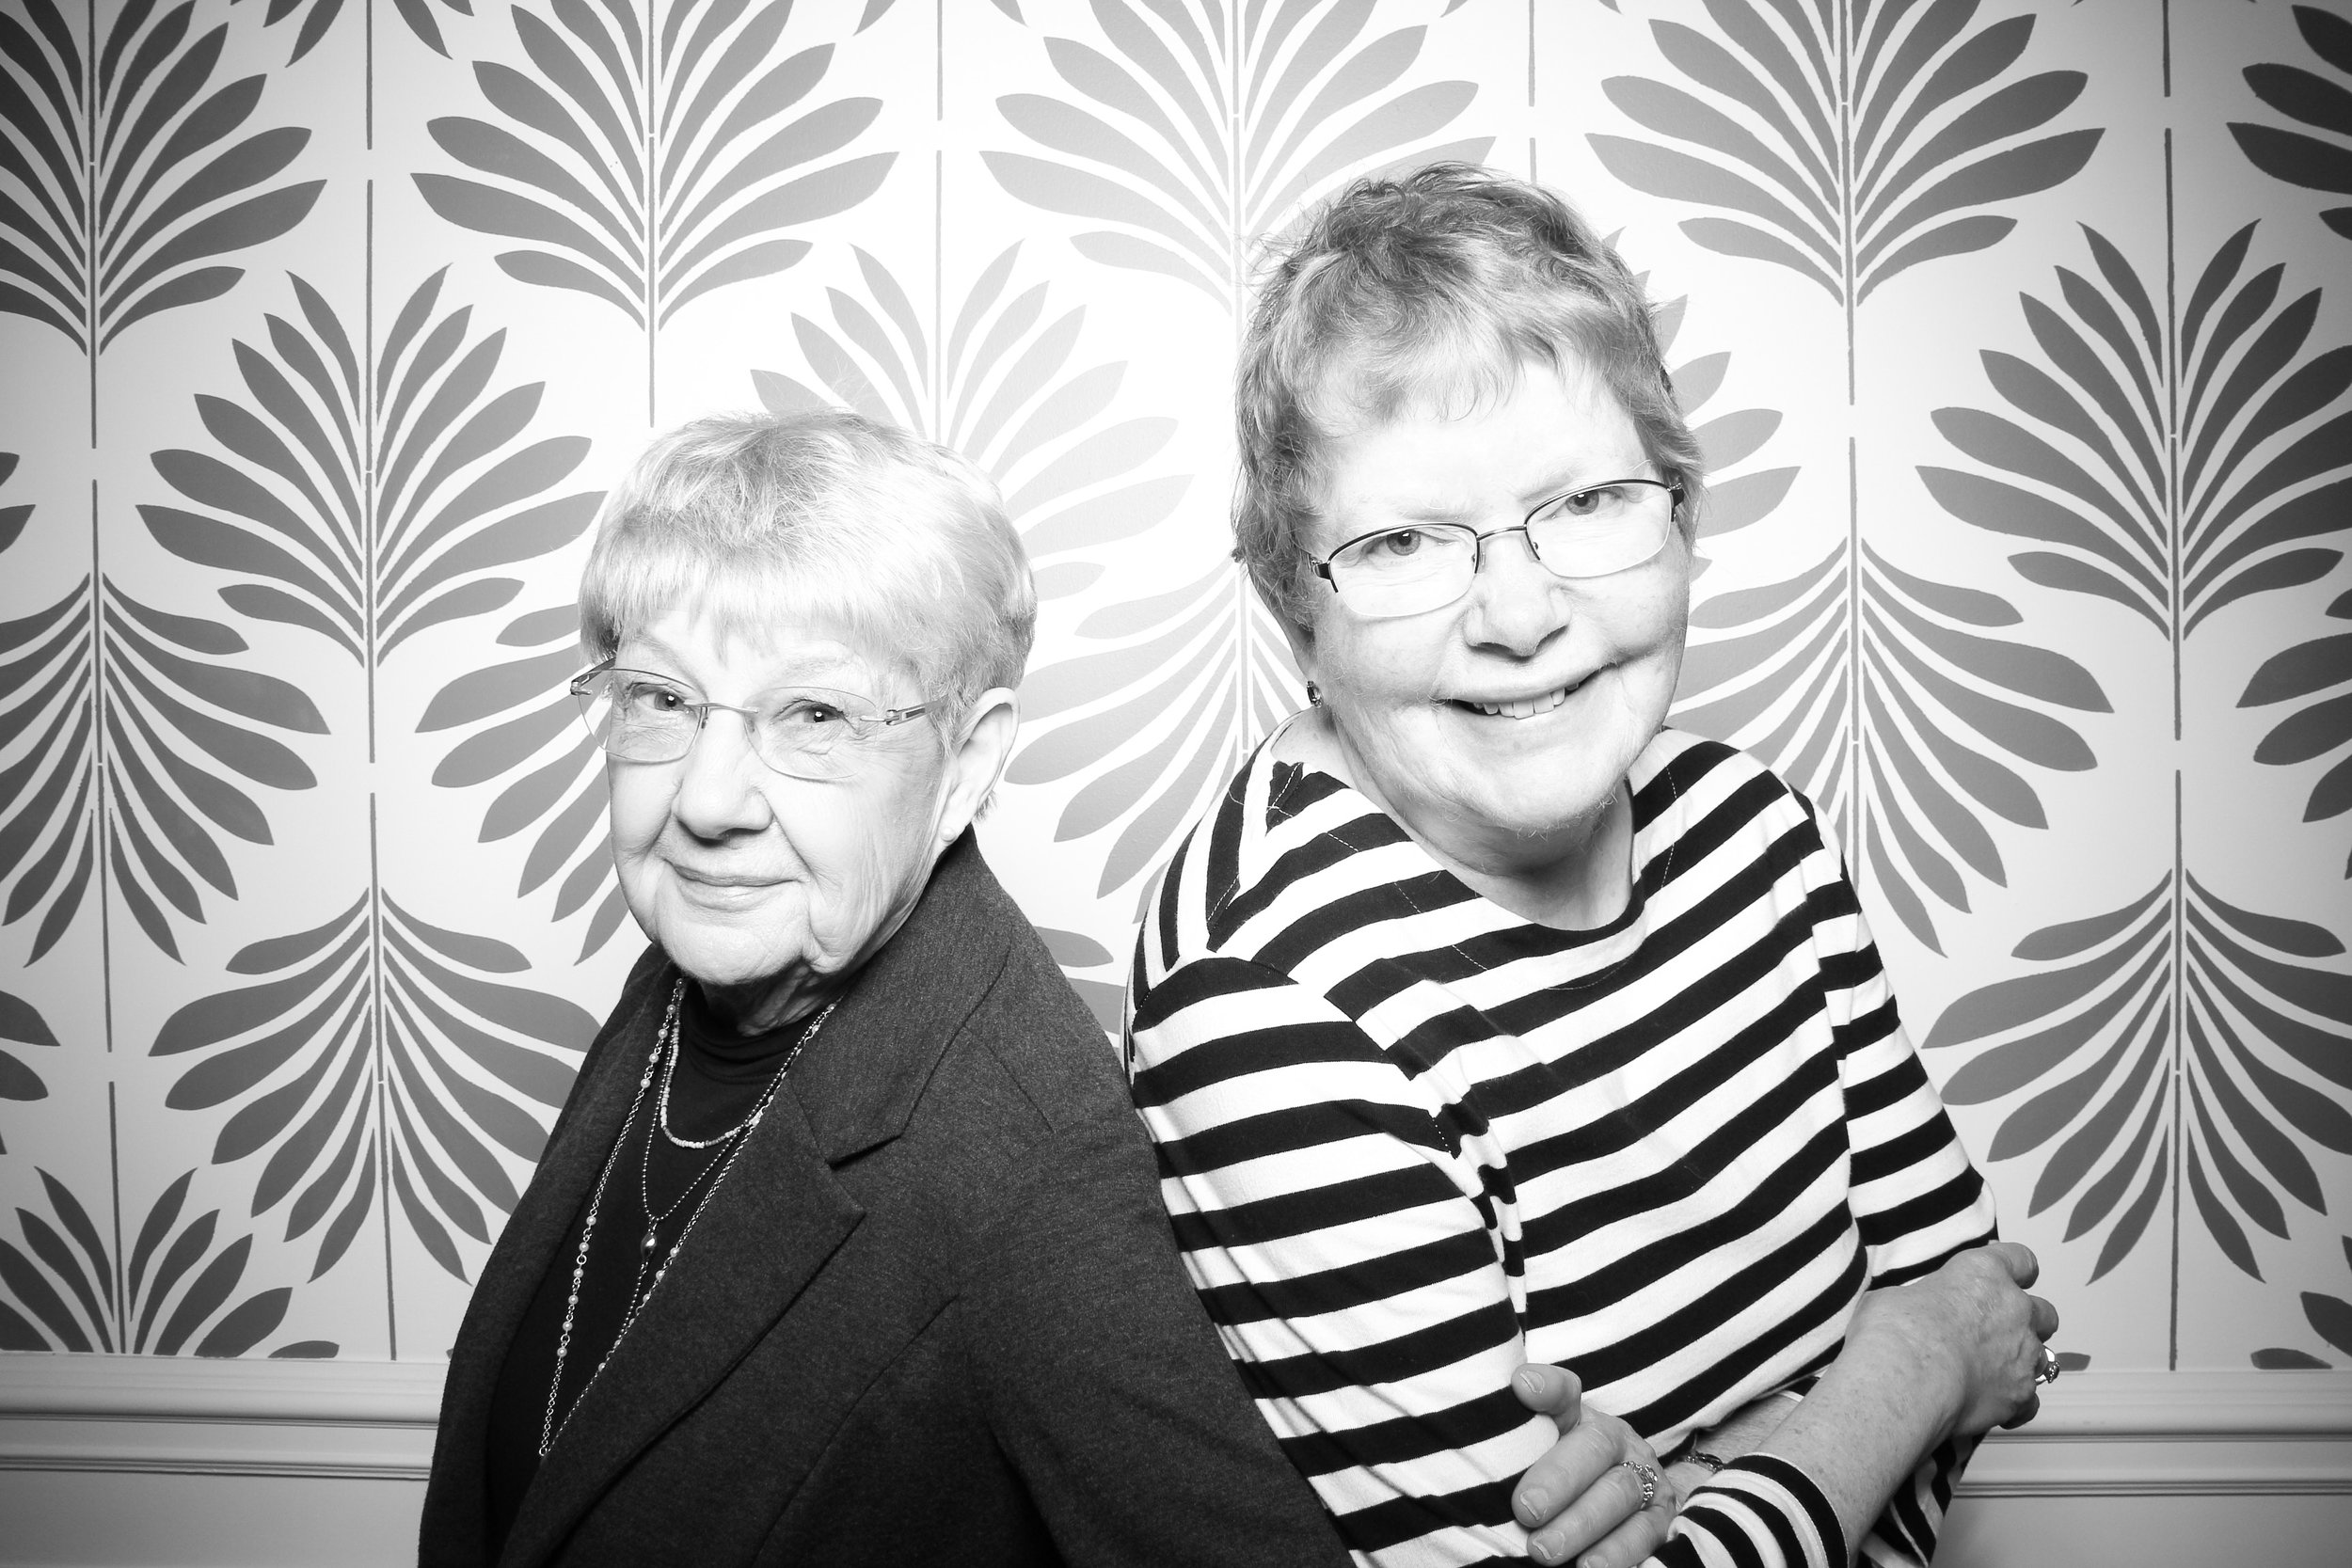 LaGrange_Country_Club_Photo_Booth_Wedding_Reception__18.jpg